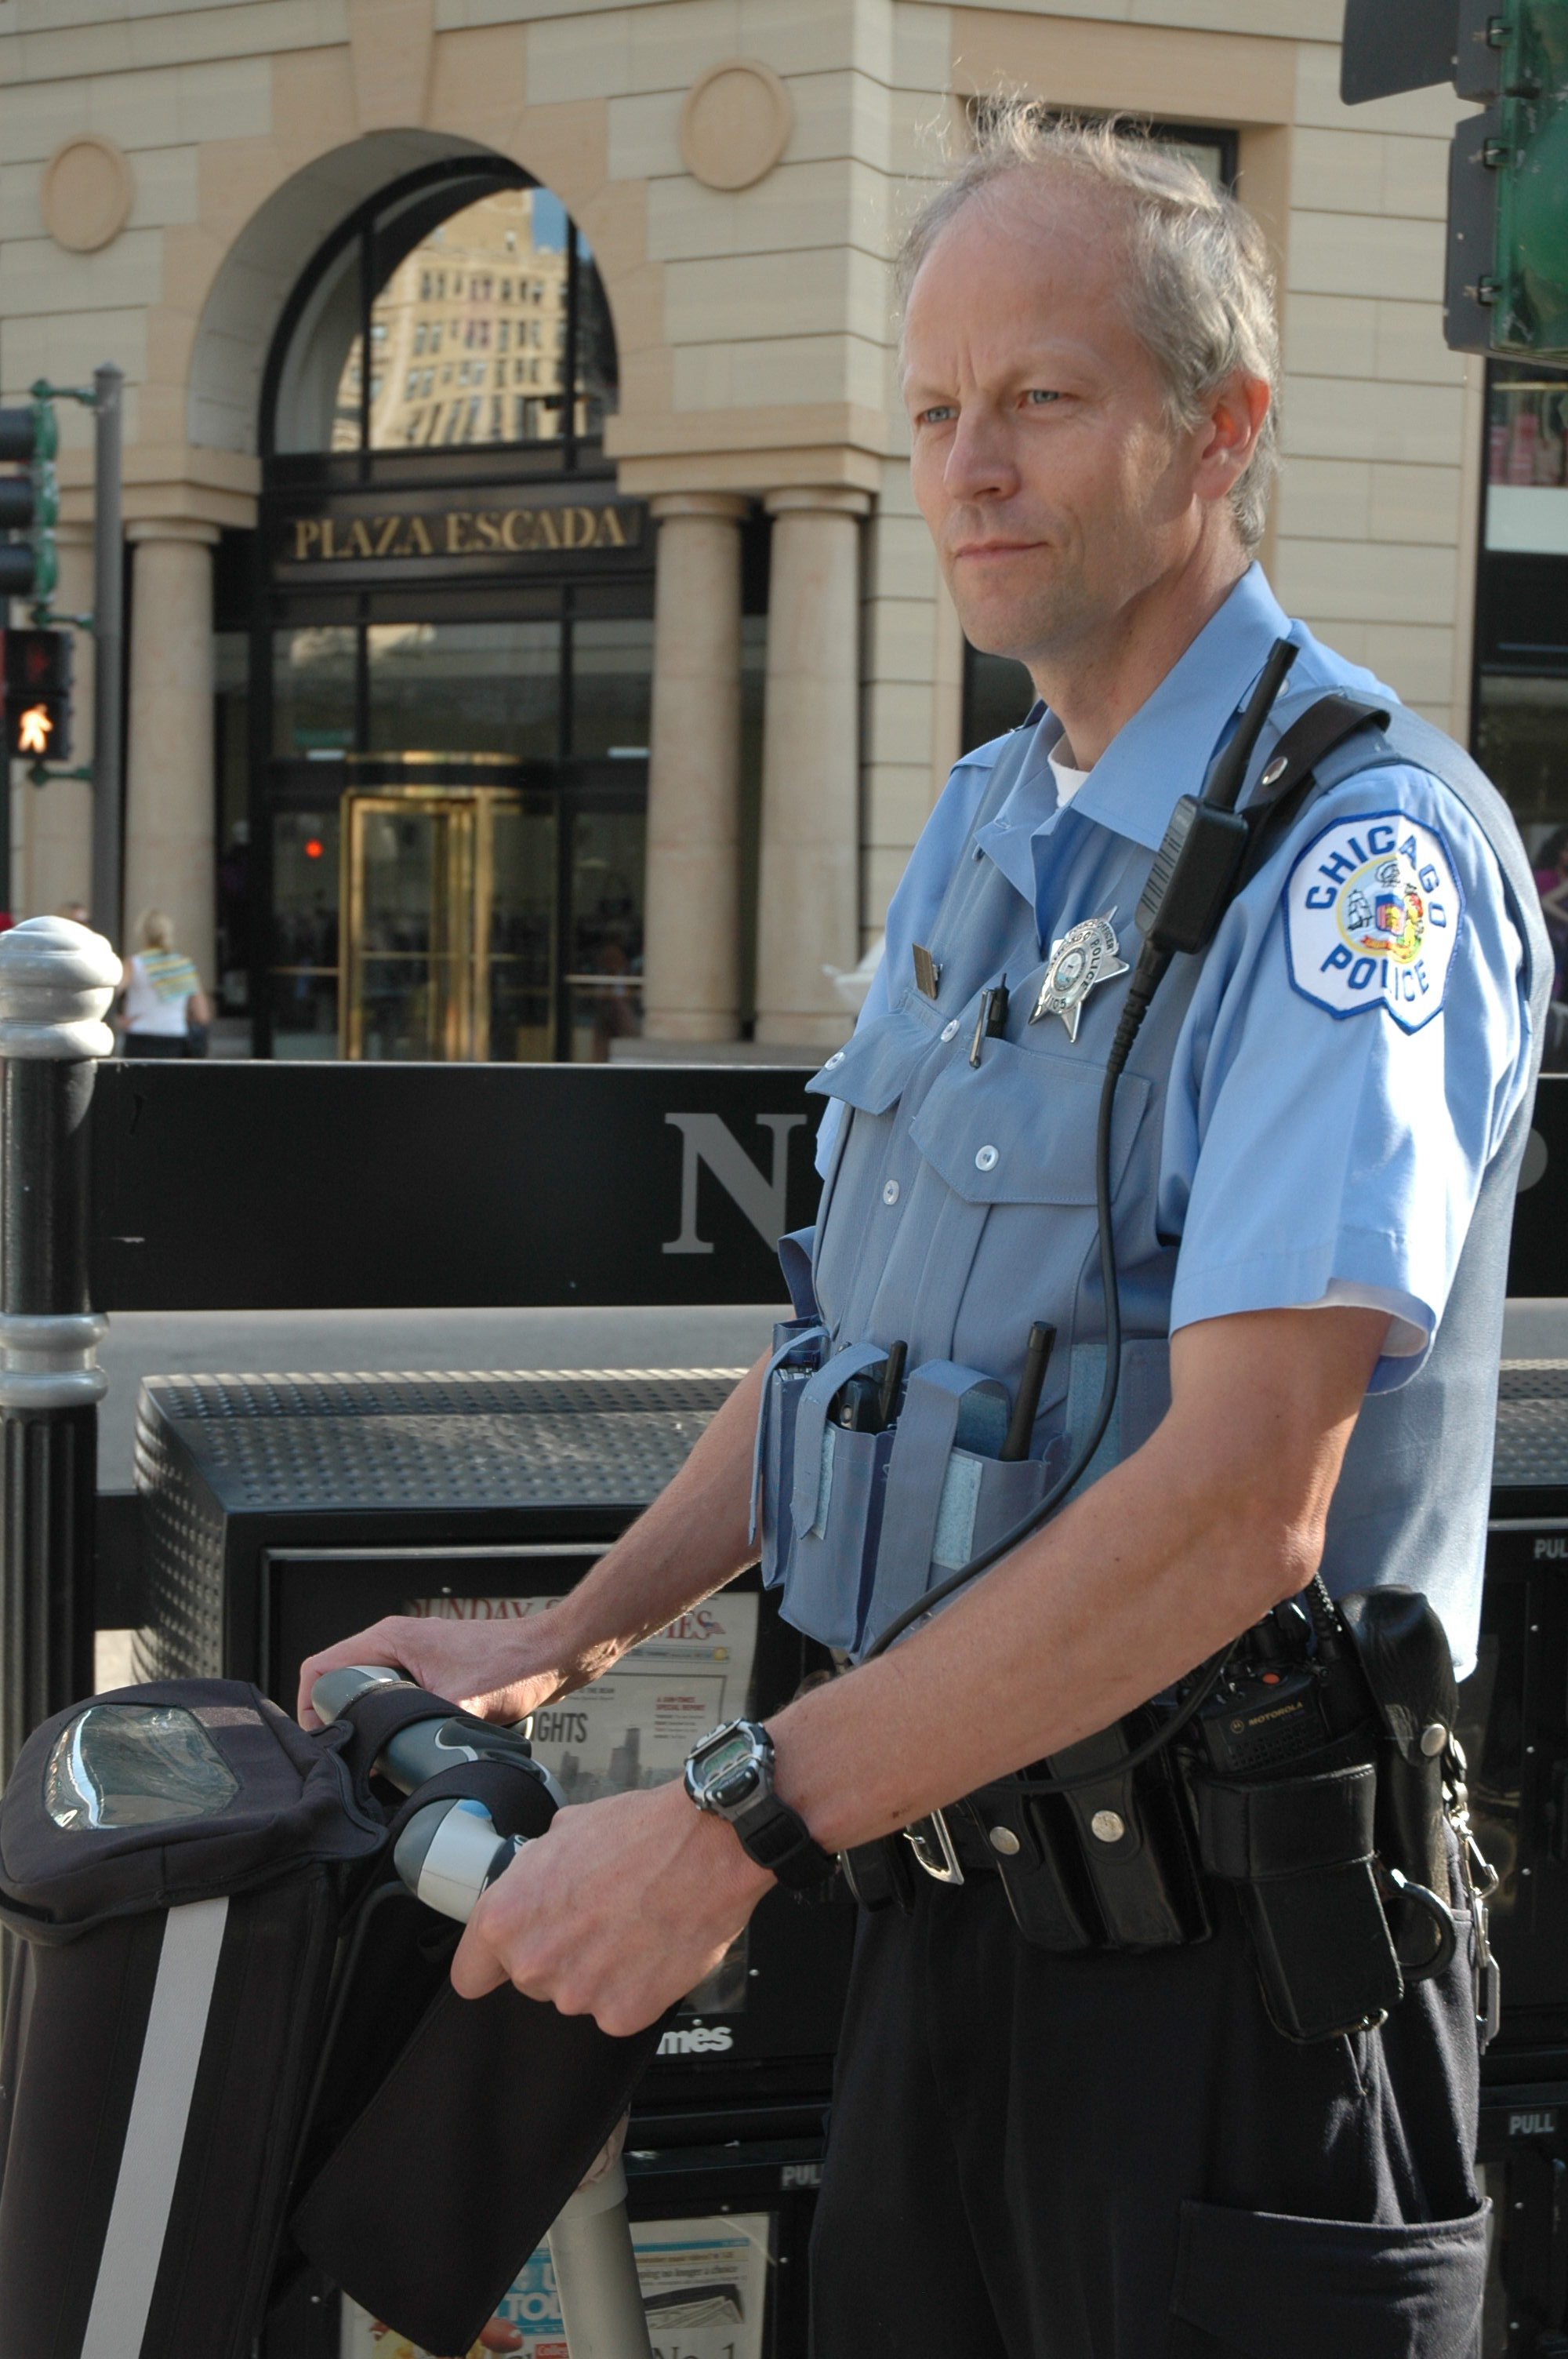 Police Officer Brett Gustafson riding segway in 2005.